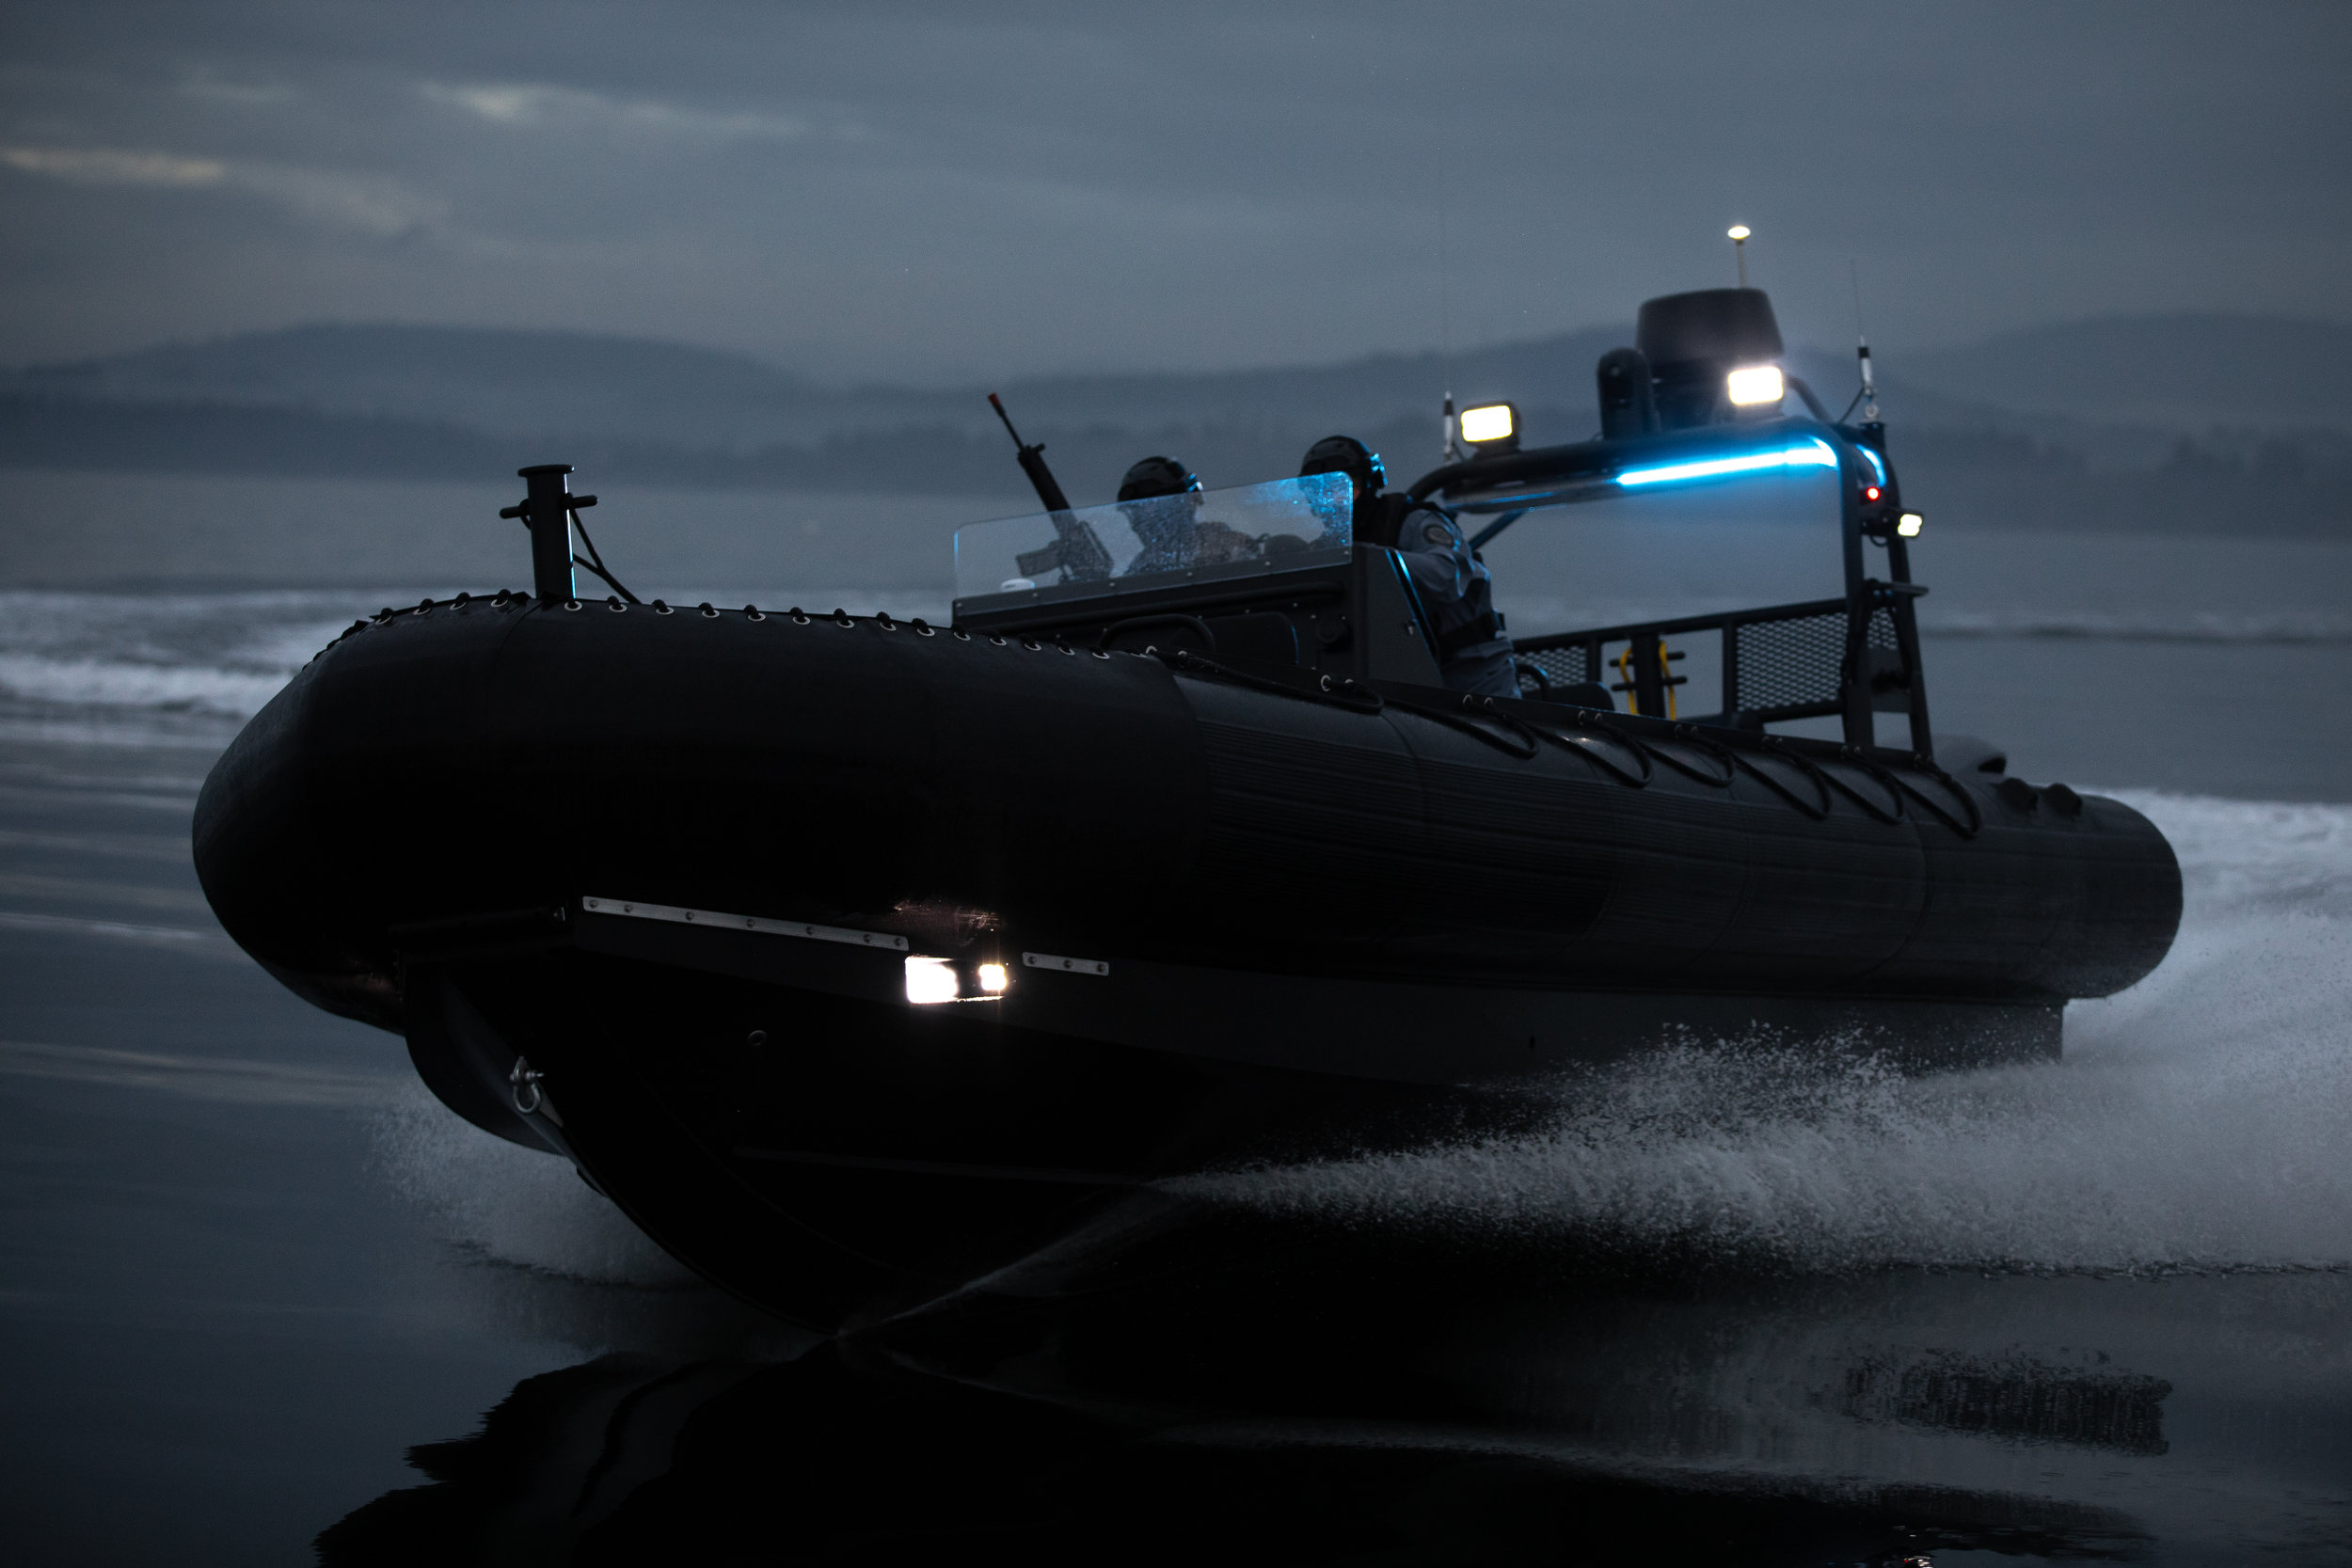 titan boats - See More